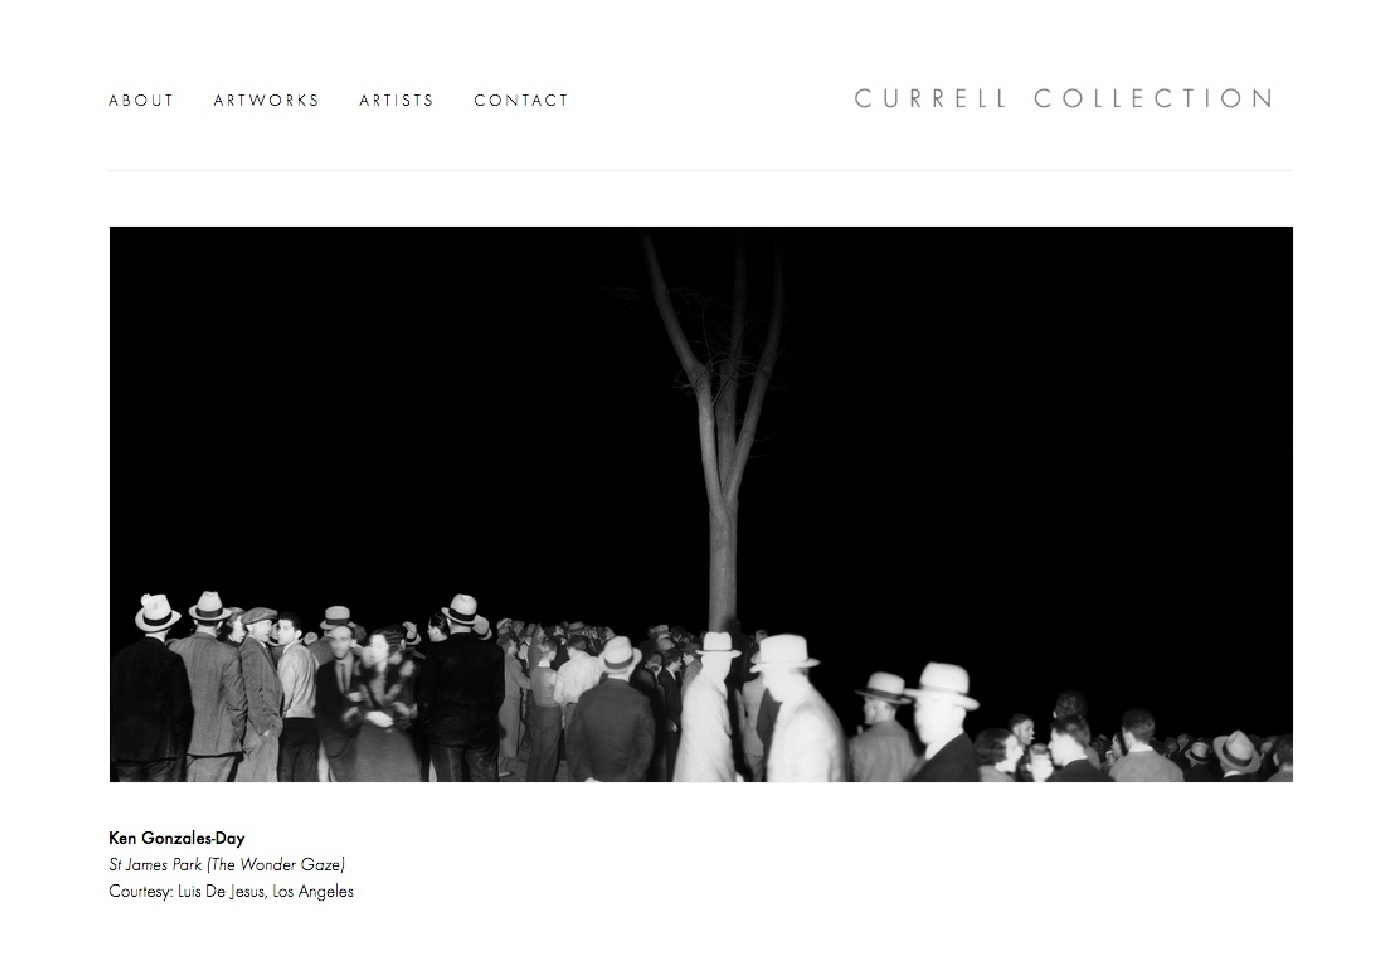 Currell Collection